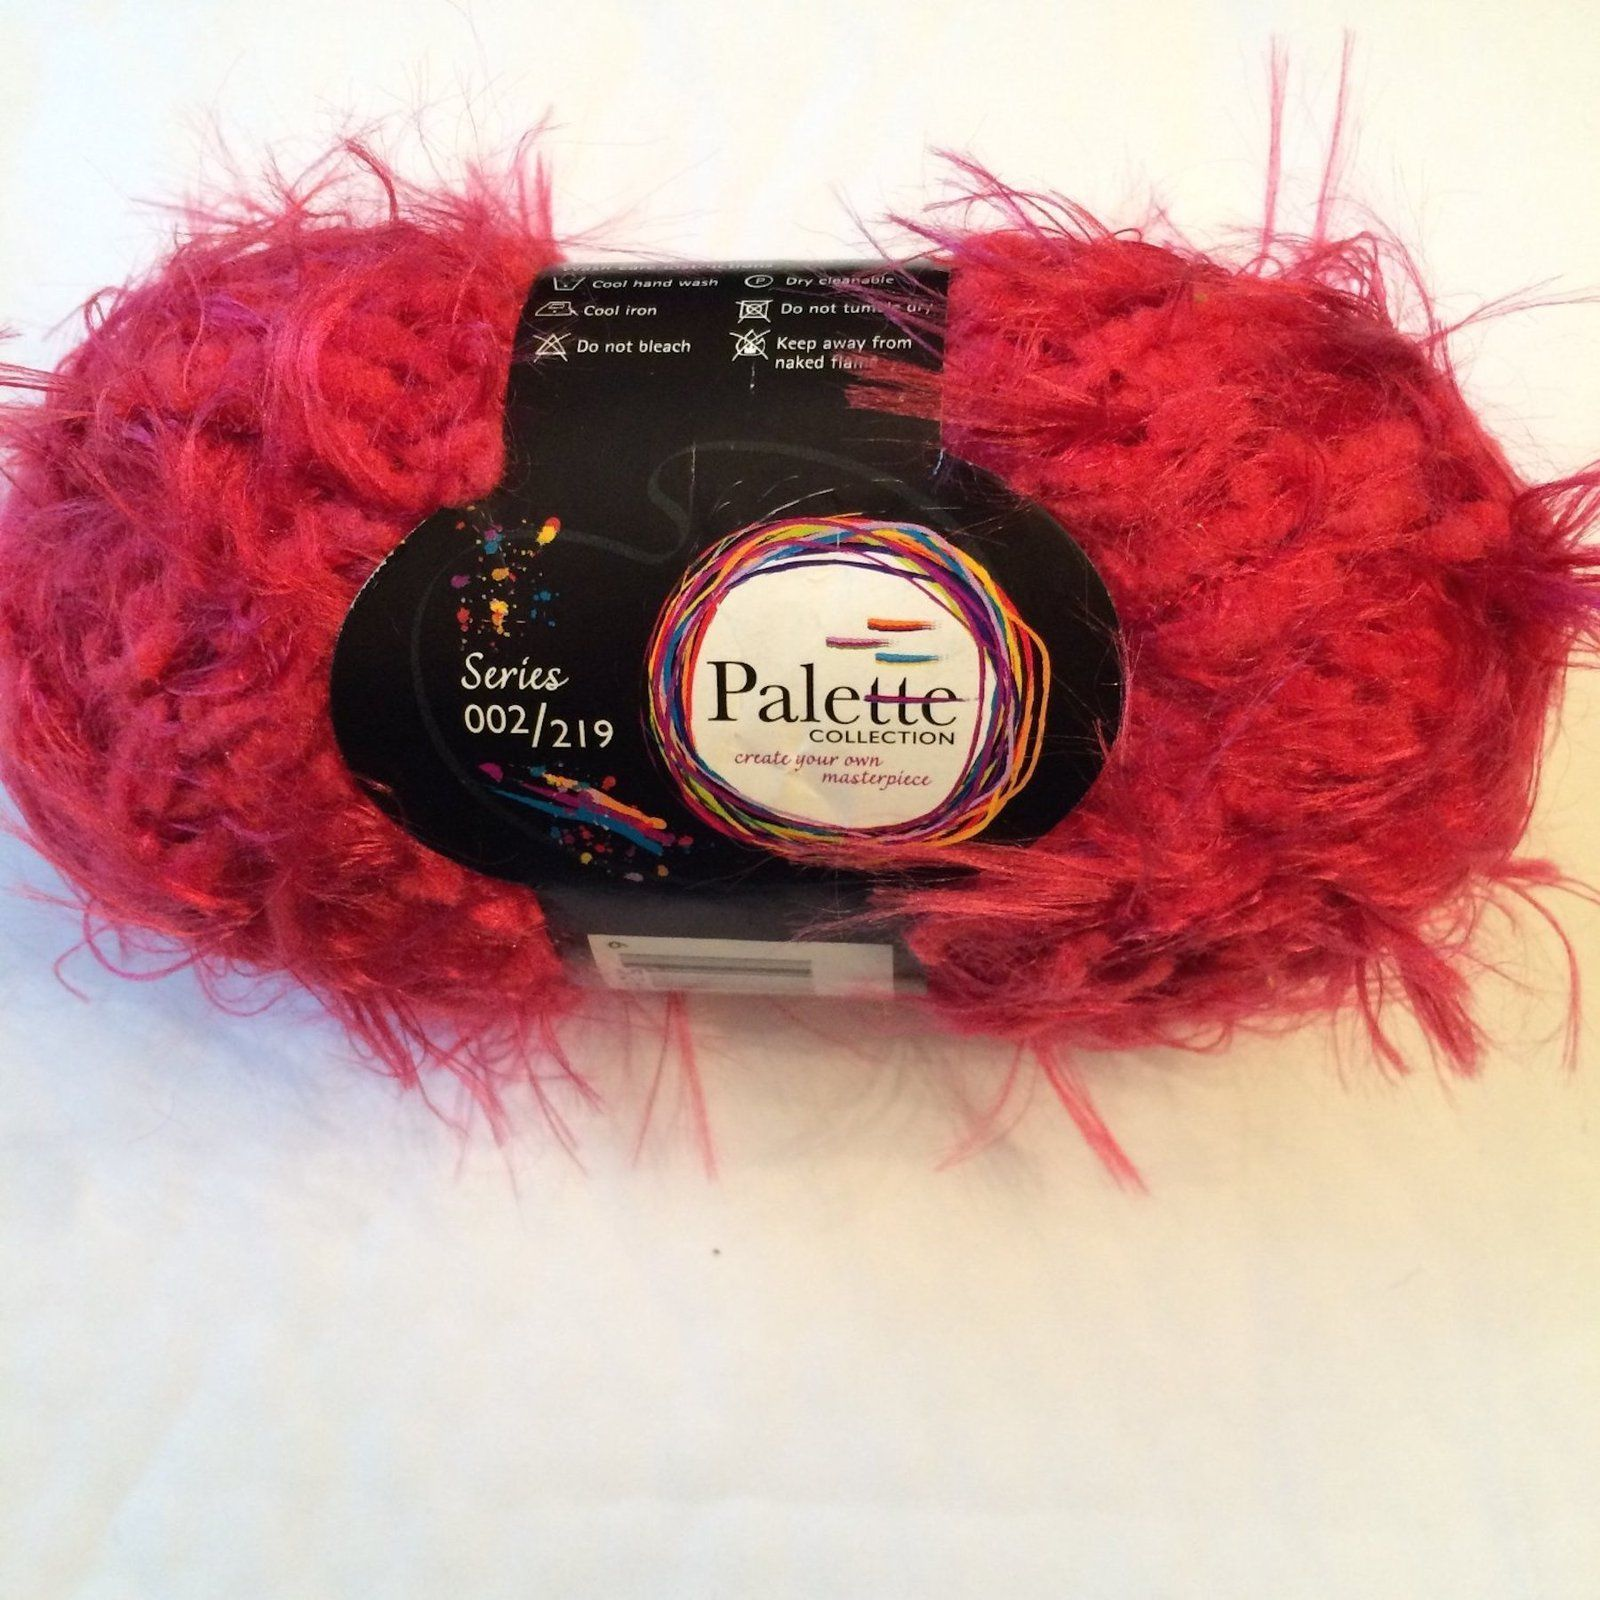 Palette Nylon Yarn: 42 Yds Scarlet RED Color Nylon Yarn #17002-05